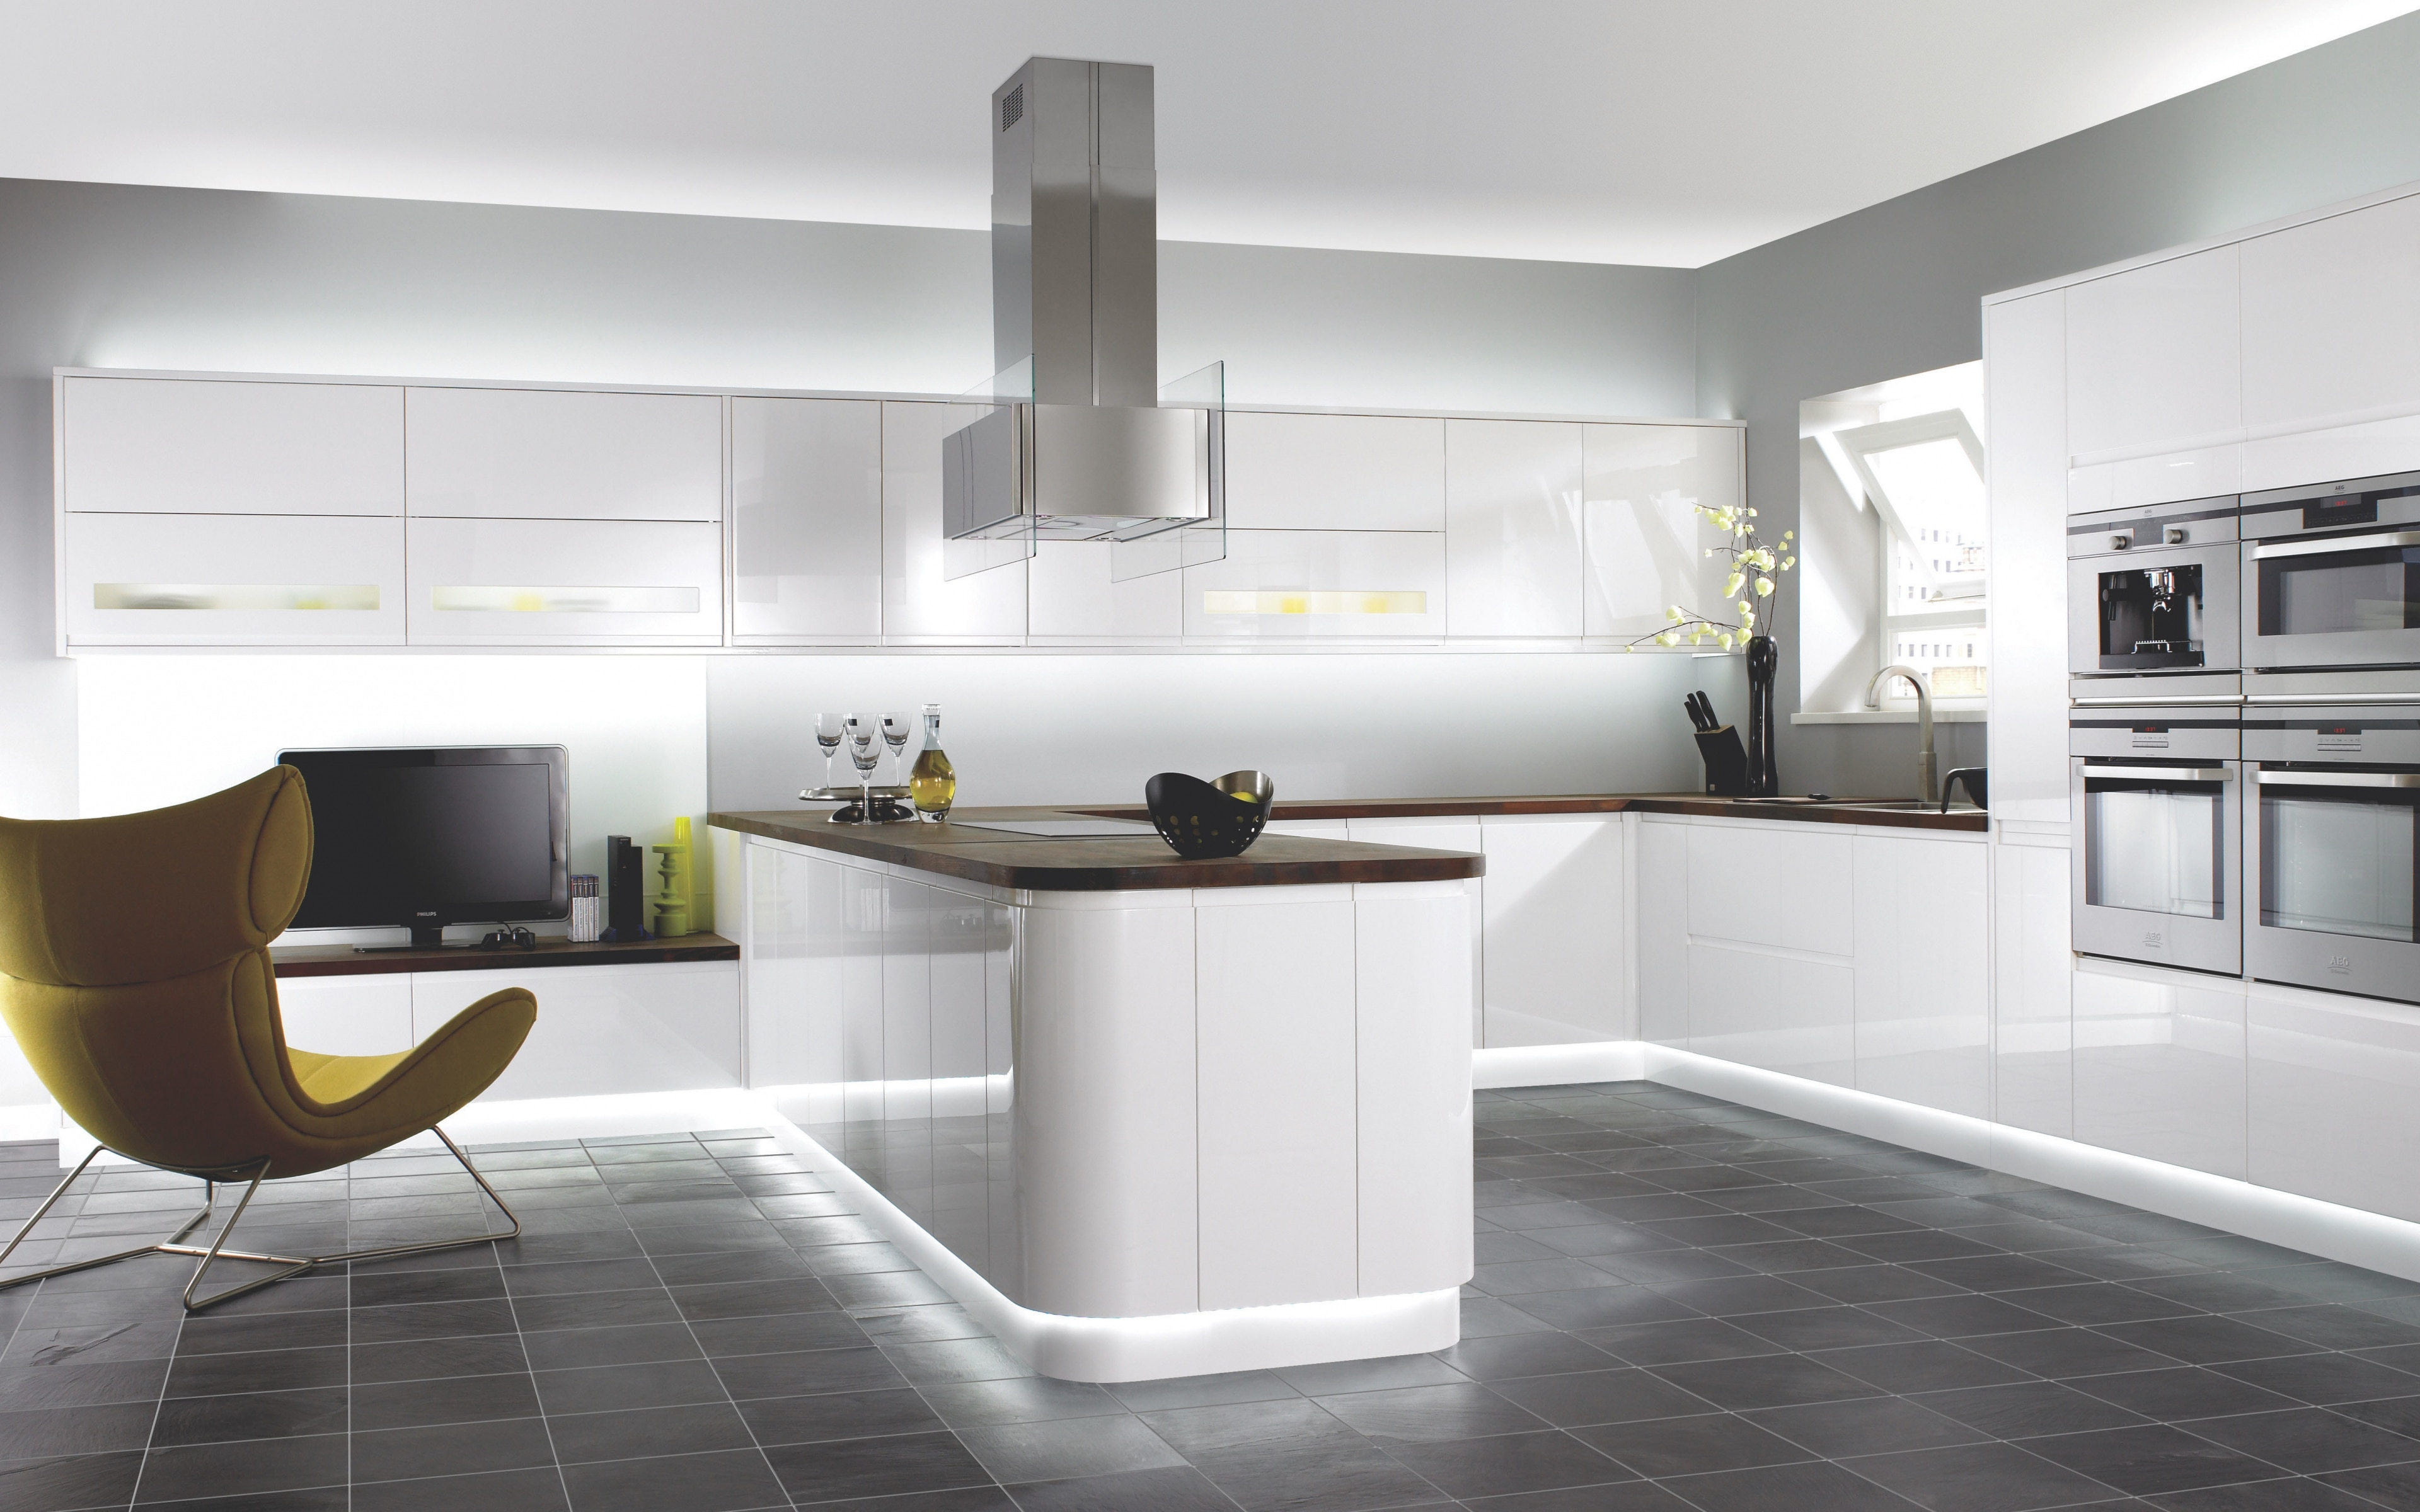 This december 2016 we designed the modular kitchen for one of our client's house at Adyar, Chennai. This interior decoration includes the modular kitchens, wardrobes, kitchen chimneys, ventilation door, wash basins, sanitary tubes and fittings. Everything is in International standards and cutting edge technology to provide the Royal and Luxurious feeling when entering into the kitchen. This designs is selected by the client  through the 3D demo view before we start the work for Interior.